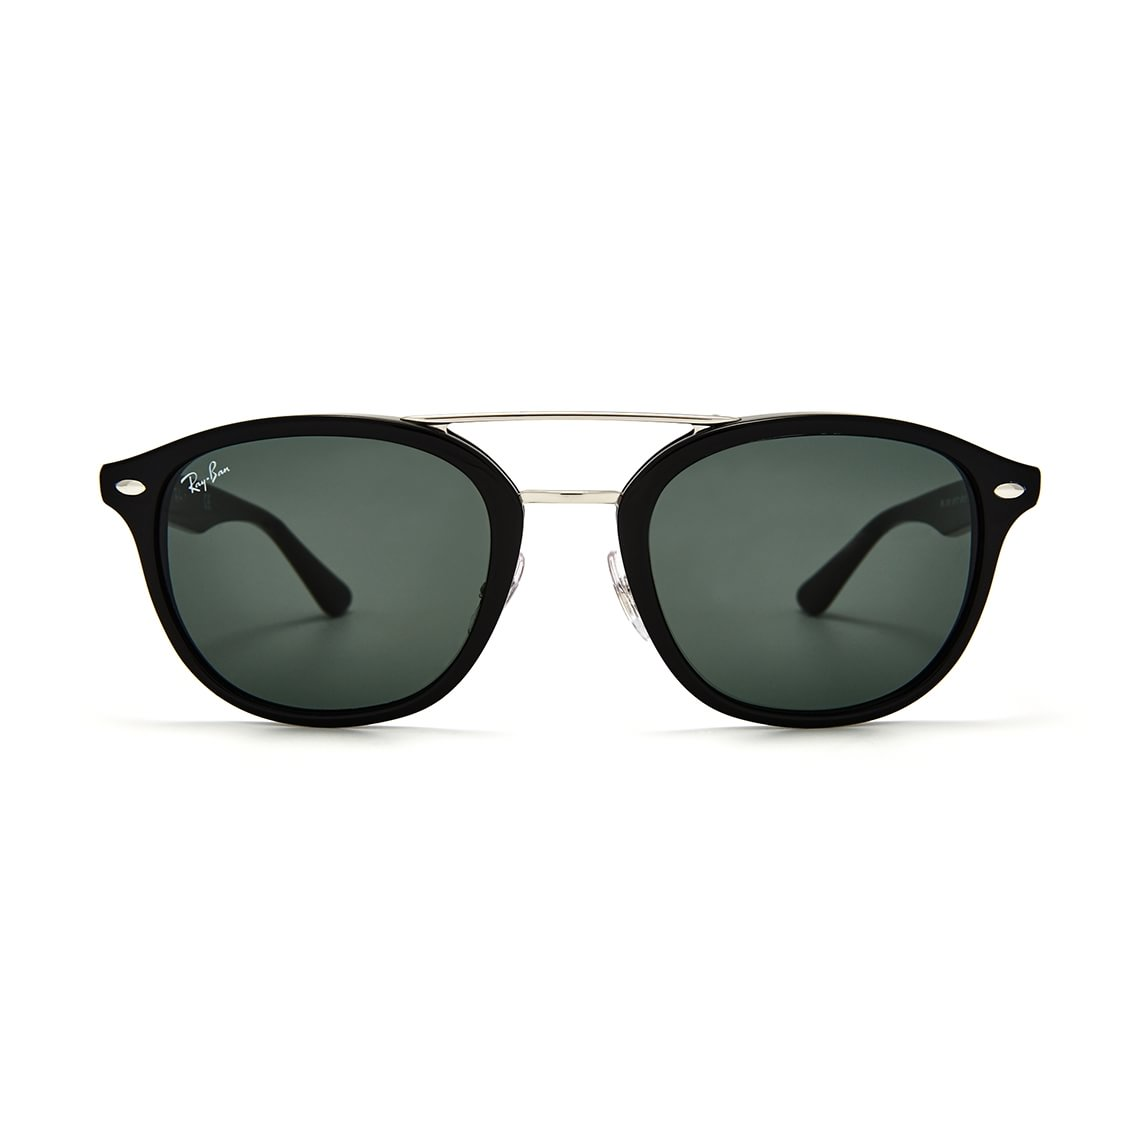 737bec6c80 Ray-Ban RB2183 901 71 5321 - Synsam